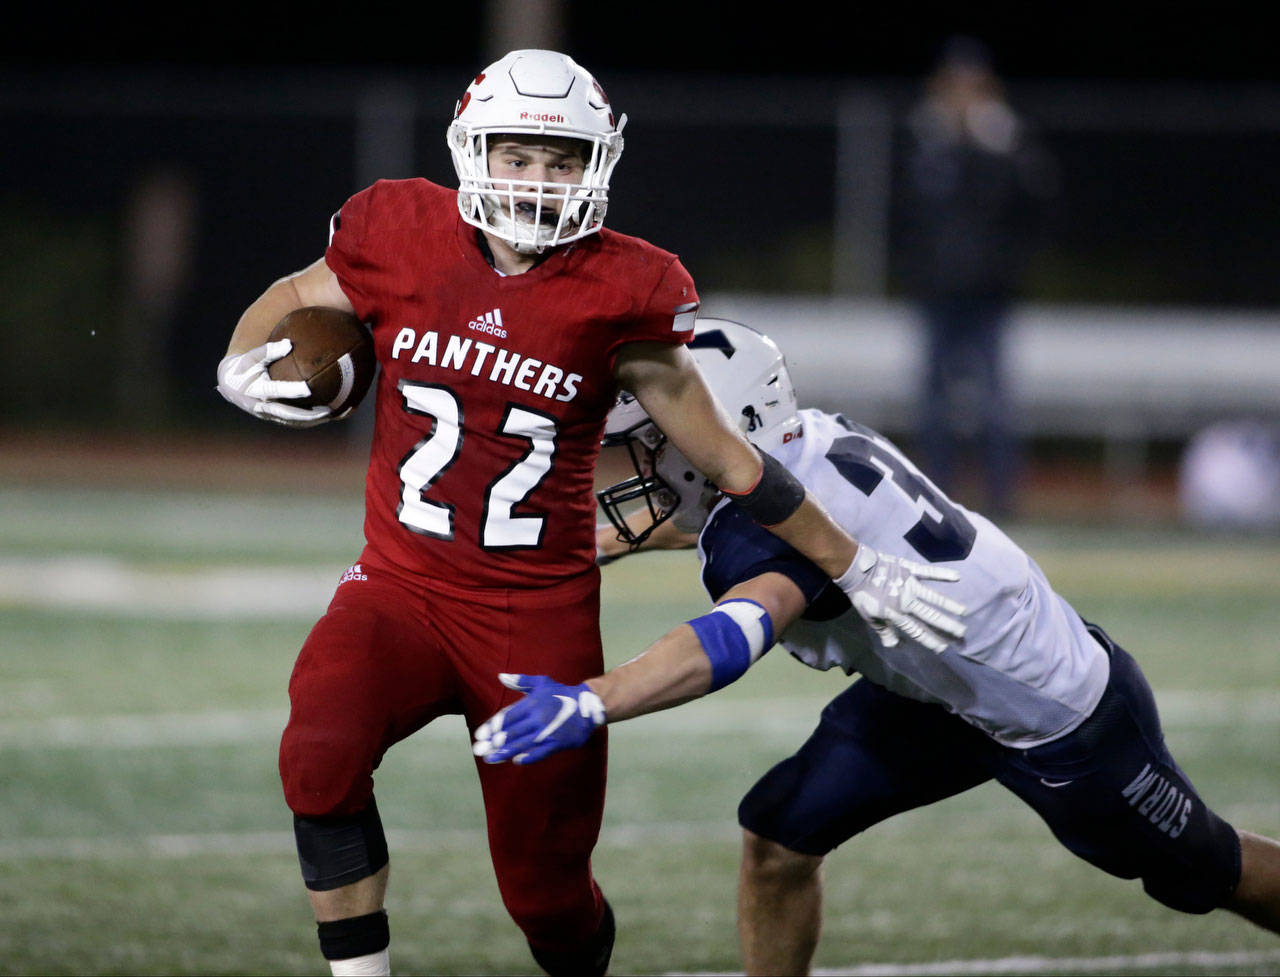 Snohomish's Tyler Larson pushes off an opponent during Snohomish's 30-27 win over Squalicum at Veterans Memorial Stadium on Oct. 26, 2018 in Snohomish. Tha Panthers enter the season as a the favorite to win the conference. (Andy Bronson / The Herald)